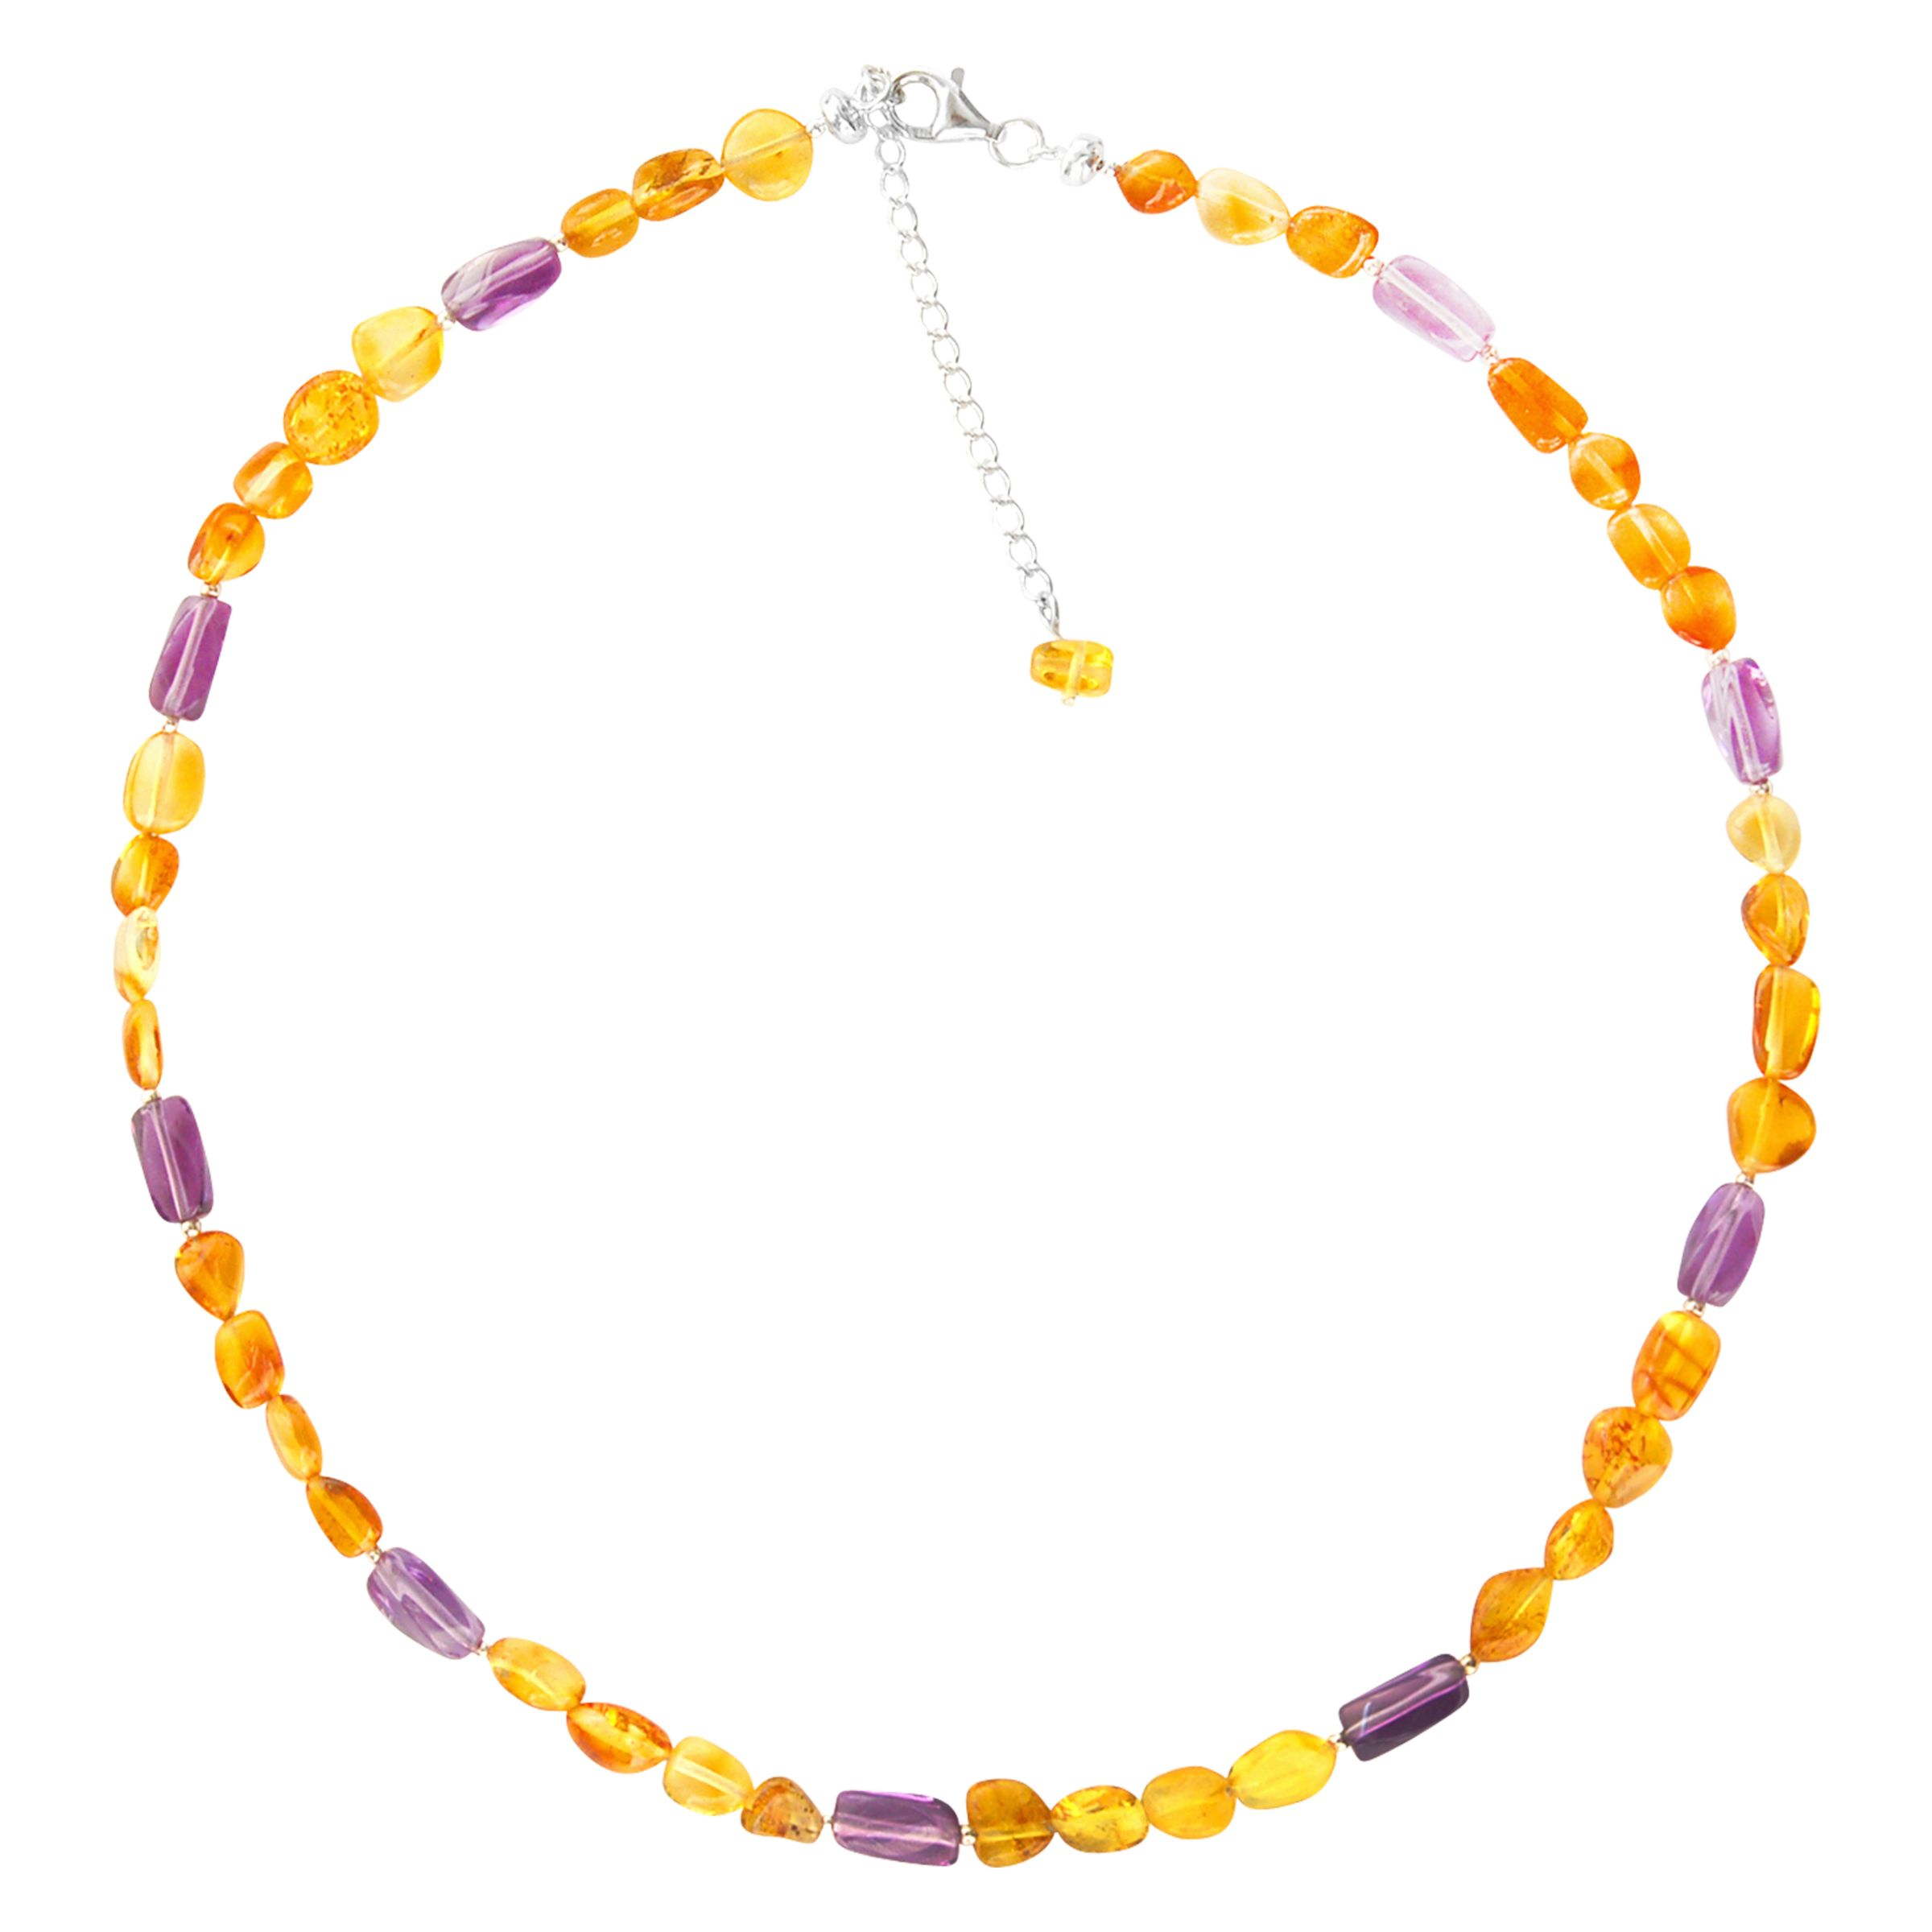 Goldmajor Goldmajor Sterling Silver Amber and Amethyst Collar Necklace, Silver/Amber